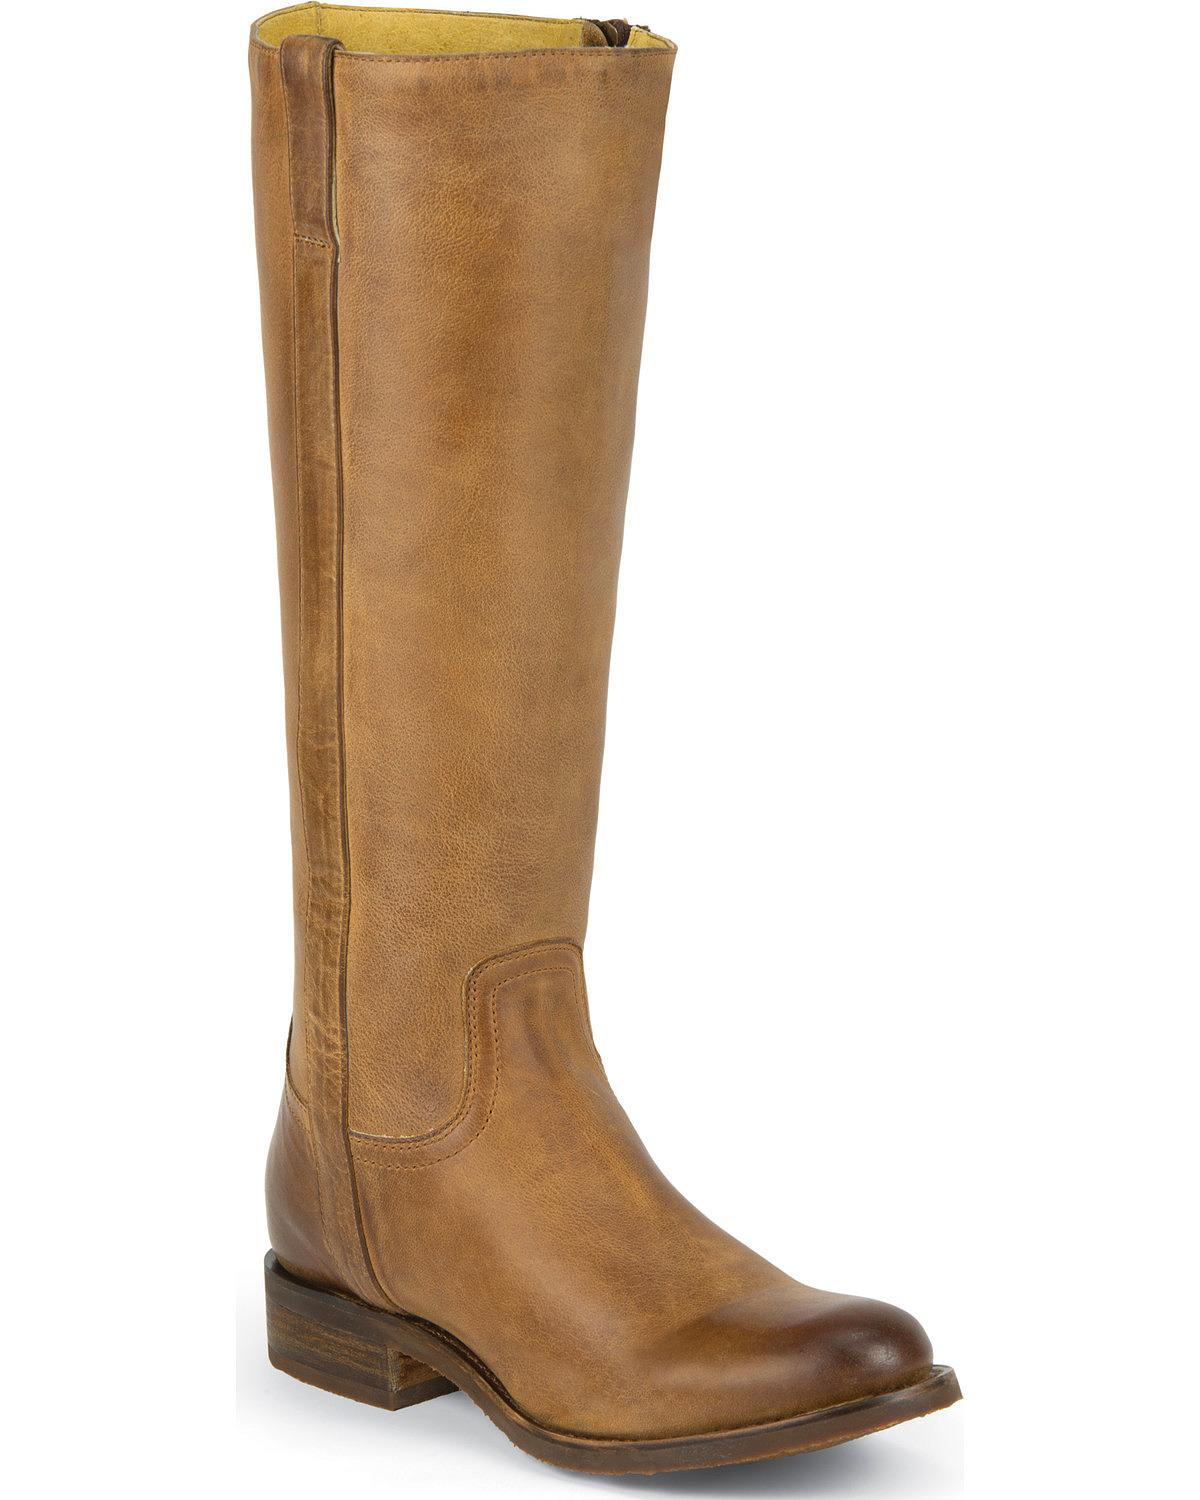 Our women's tall riding boots are the only choice for today's discerning rider. Free Standard Shipping On All Domestic Orders $99 or More X. United States. Country Selector. Please Select Your Country Leather Price $ - $ $ and Over Clear Filters.